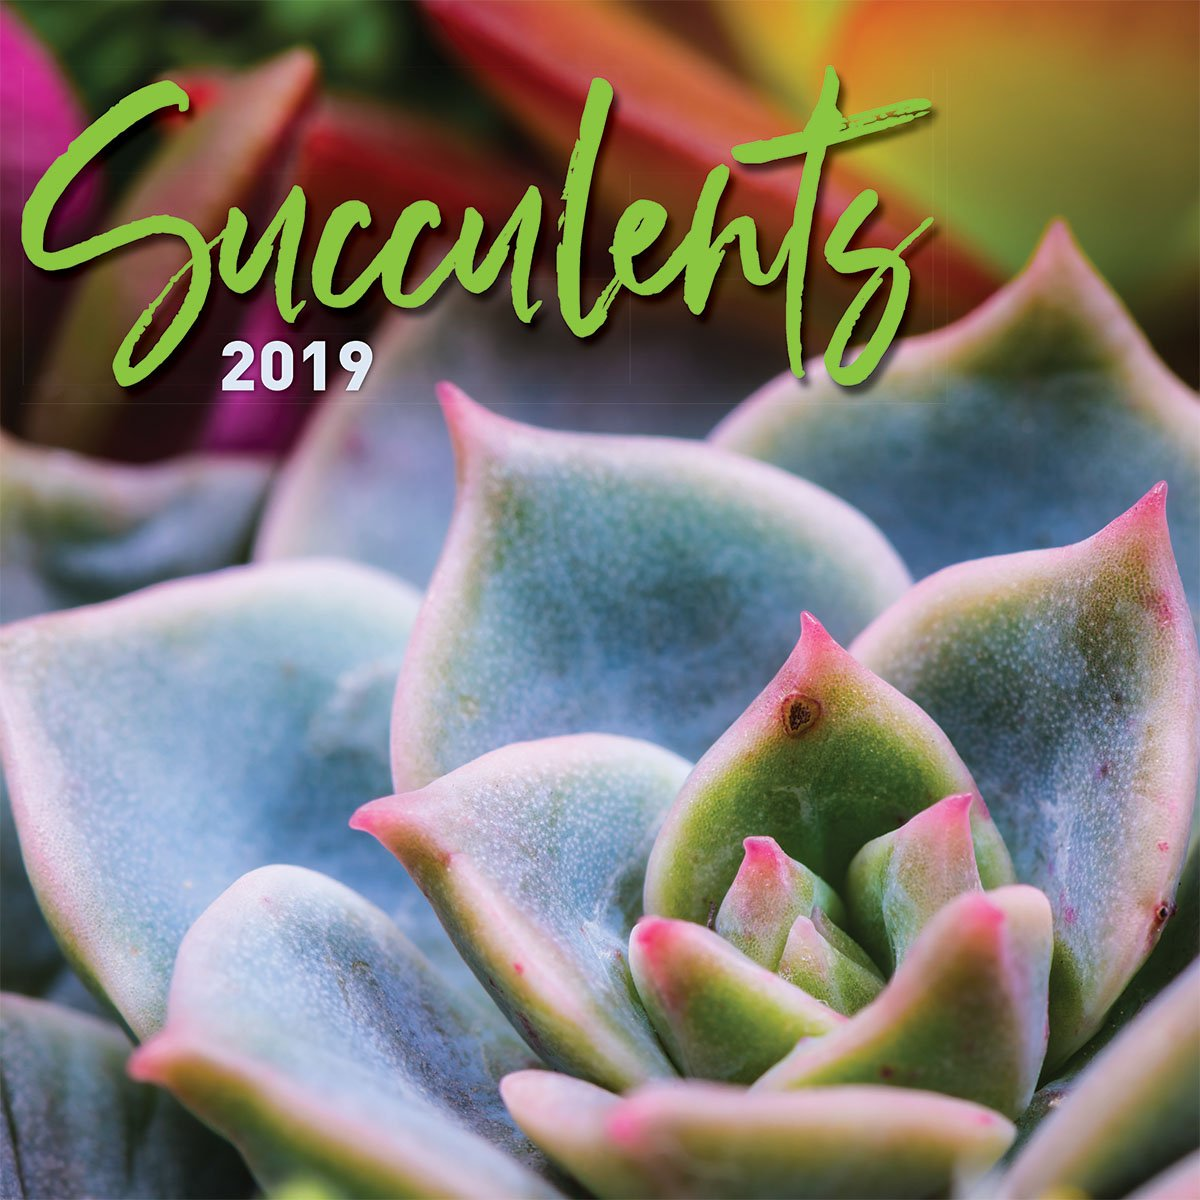 Turner Photo Succulents 2019 Wall Calendar (199989400840 Office Wall Calendar (19998940084) by Turner